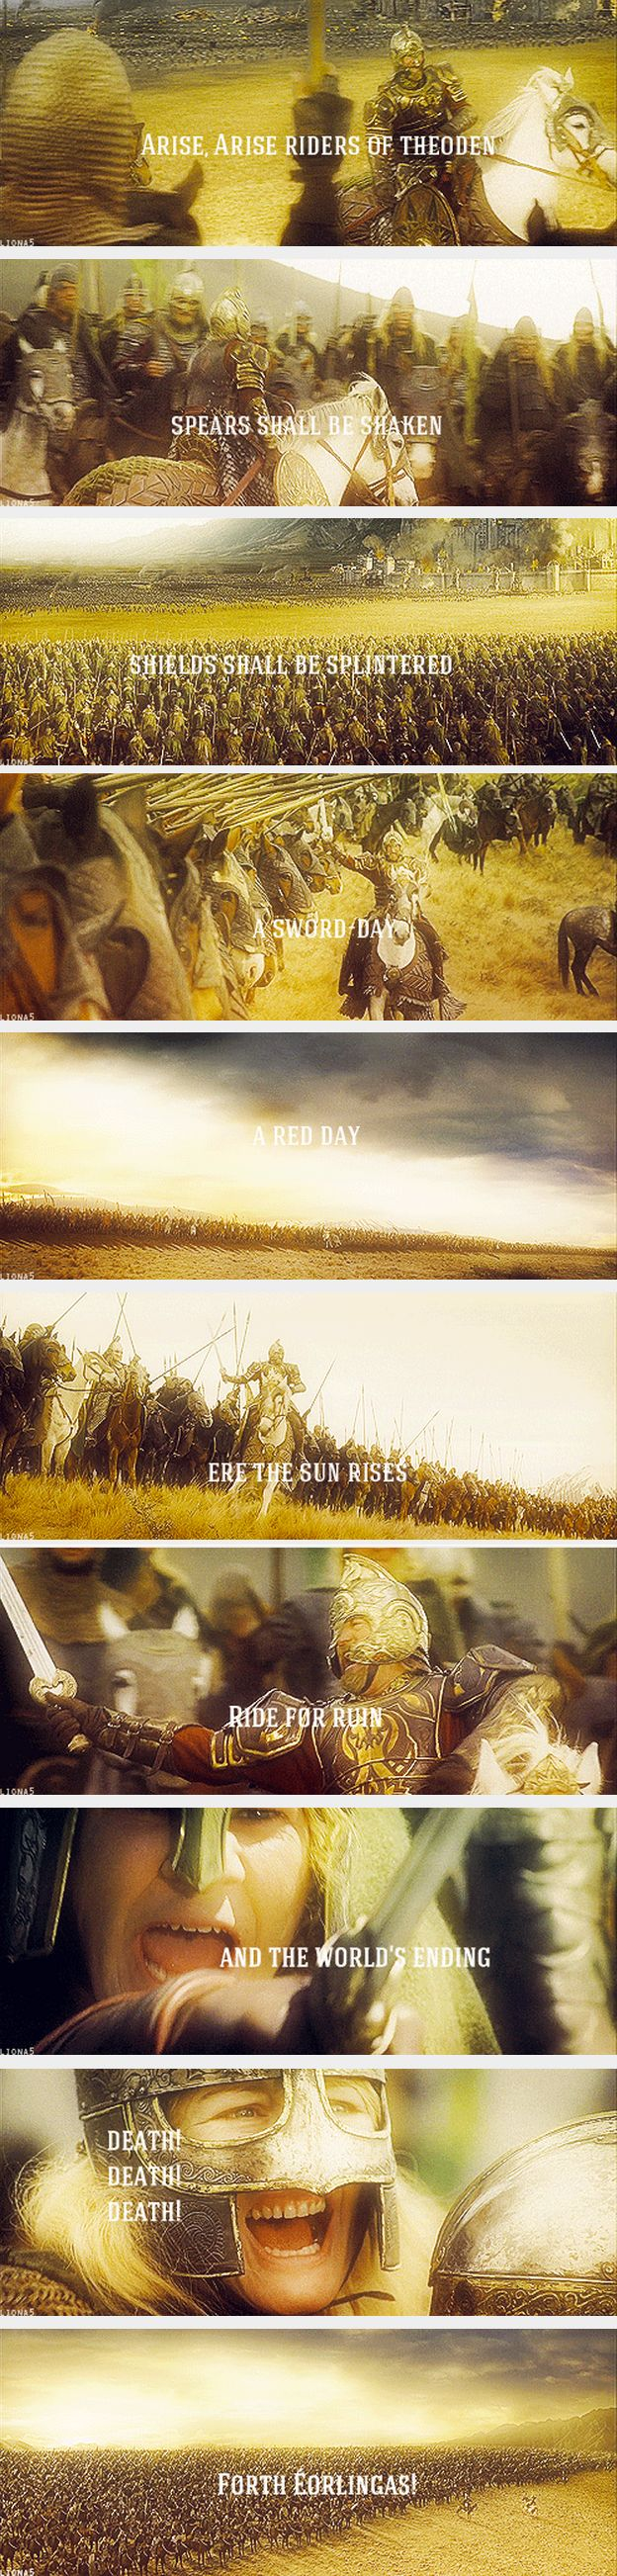 Théoden's speech before riding to battle on the Pelennor Fields, one of the single most epic moments of the entire Lord of the Rings trilogy.